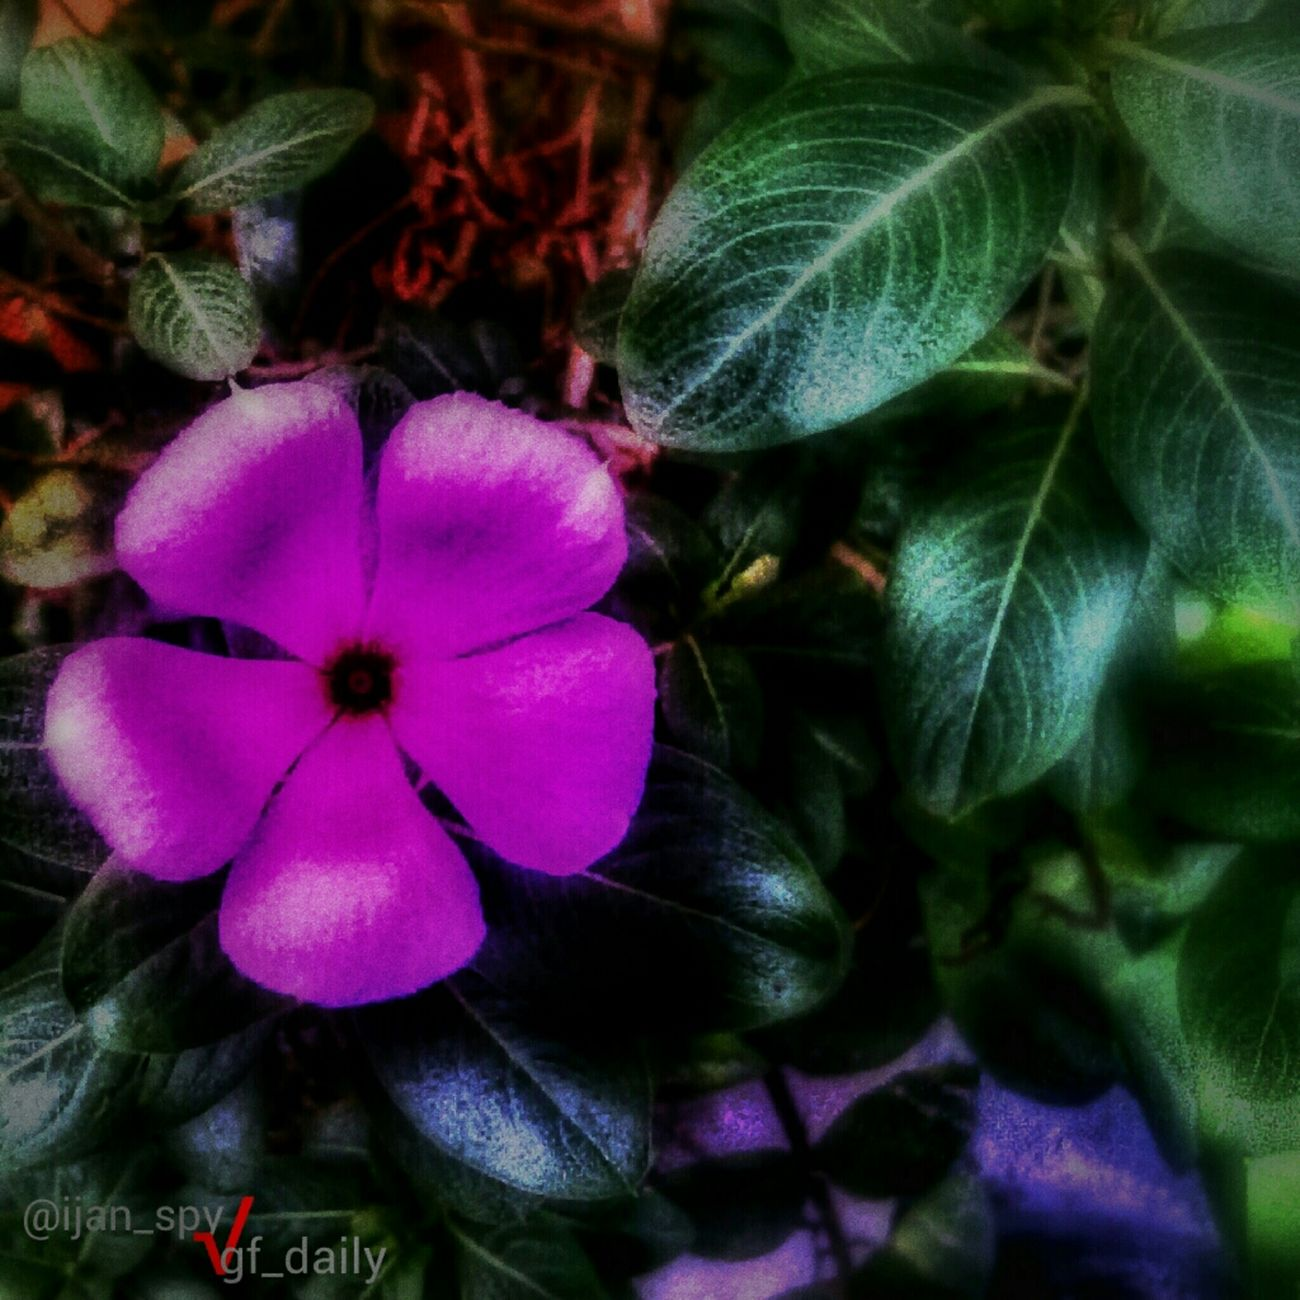 Pink flower Entry for : #gf_daily_flower_013 #floralstyles_gf #gang_family #gf_daily #gf_brothas #gf_indonesia